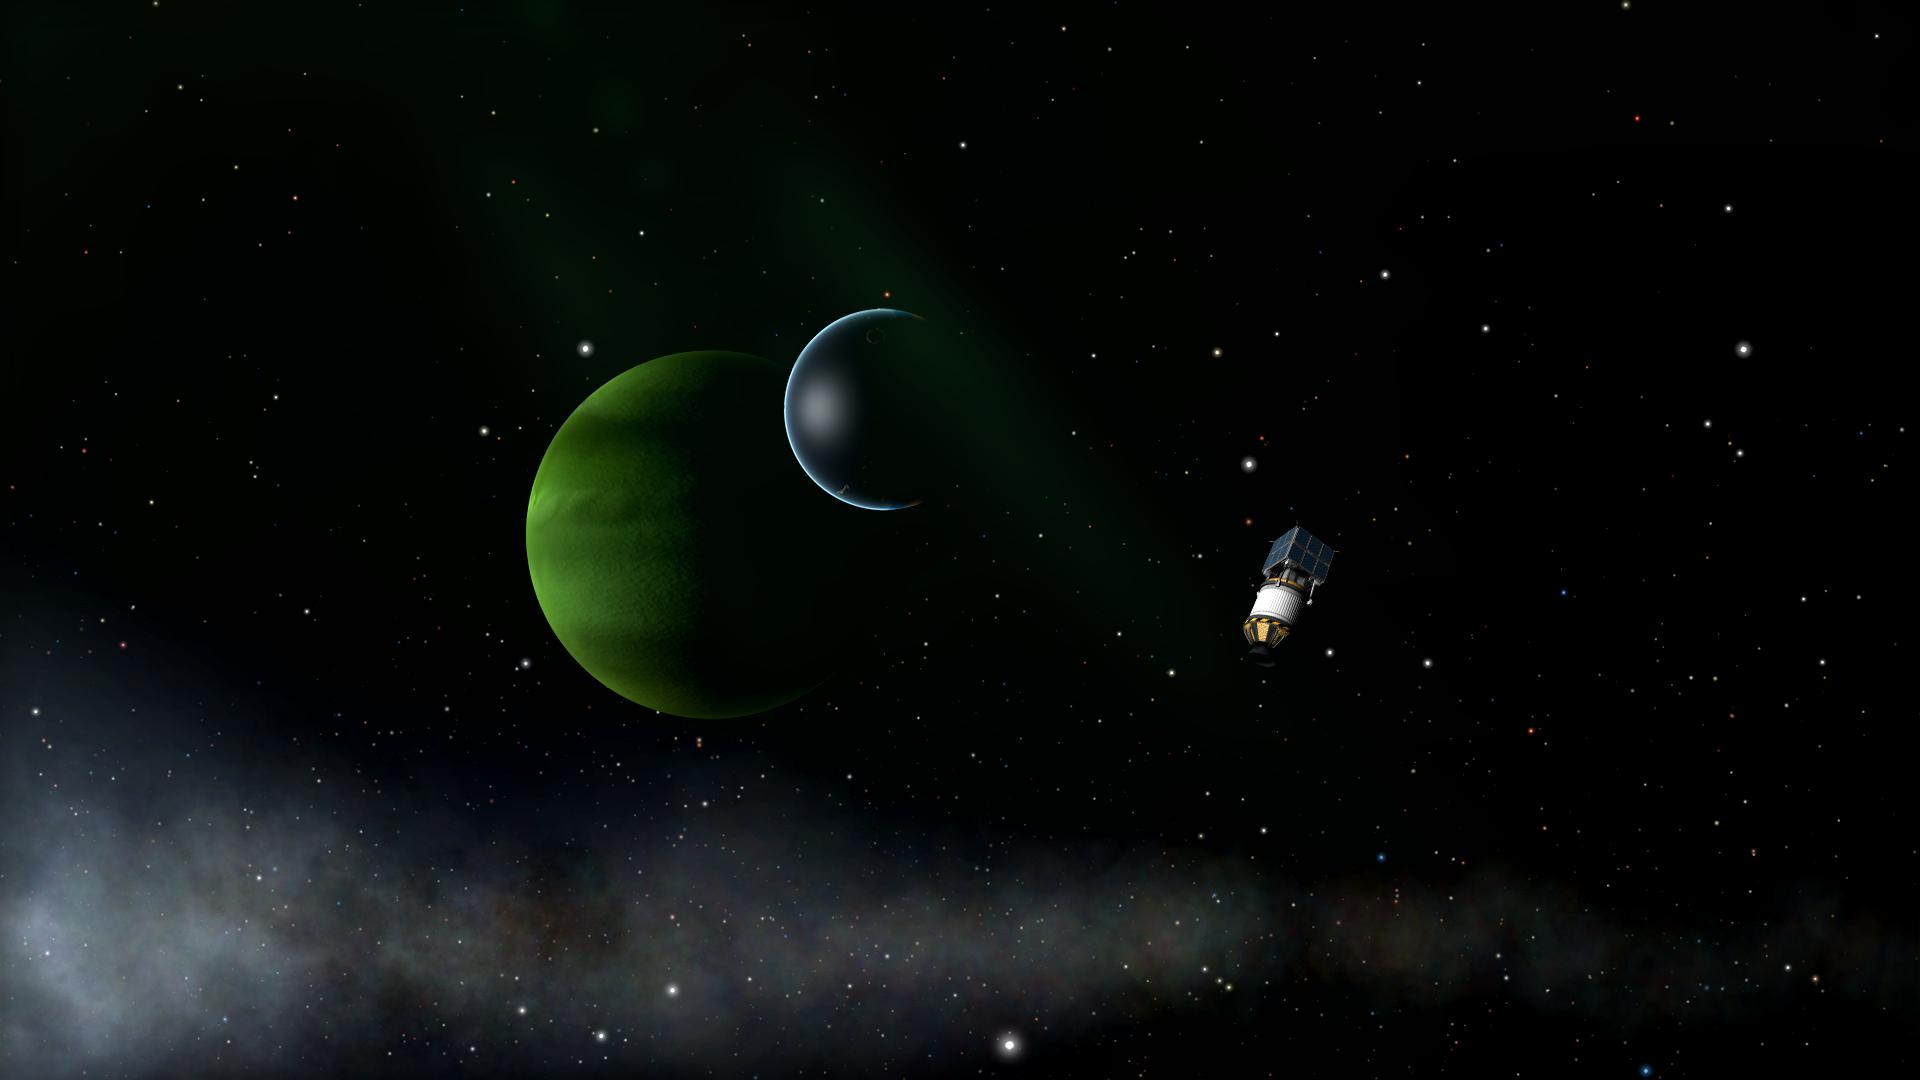 kerbal space program moon - photo #41